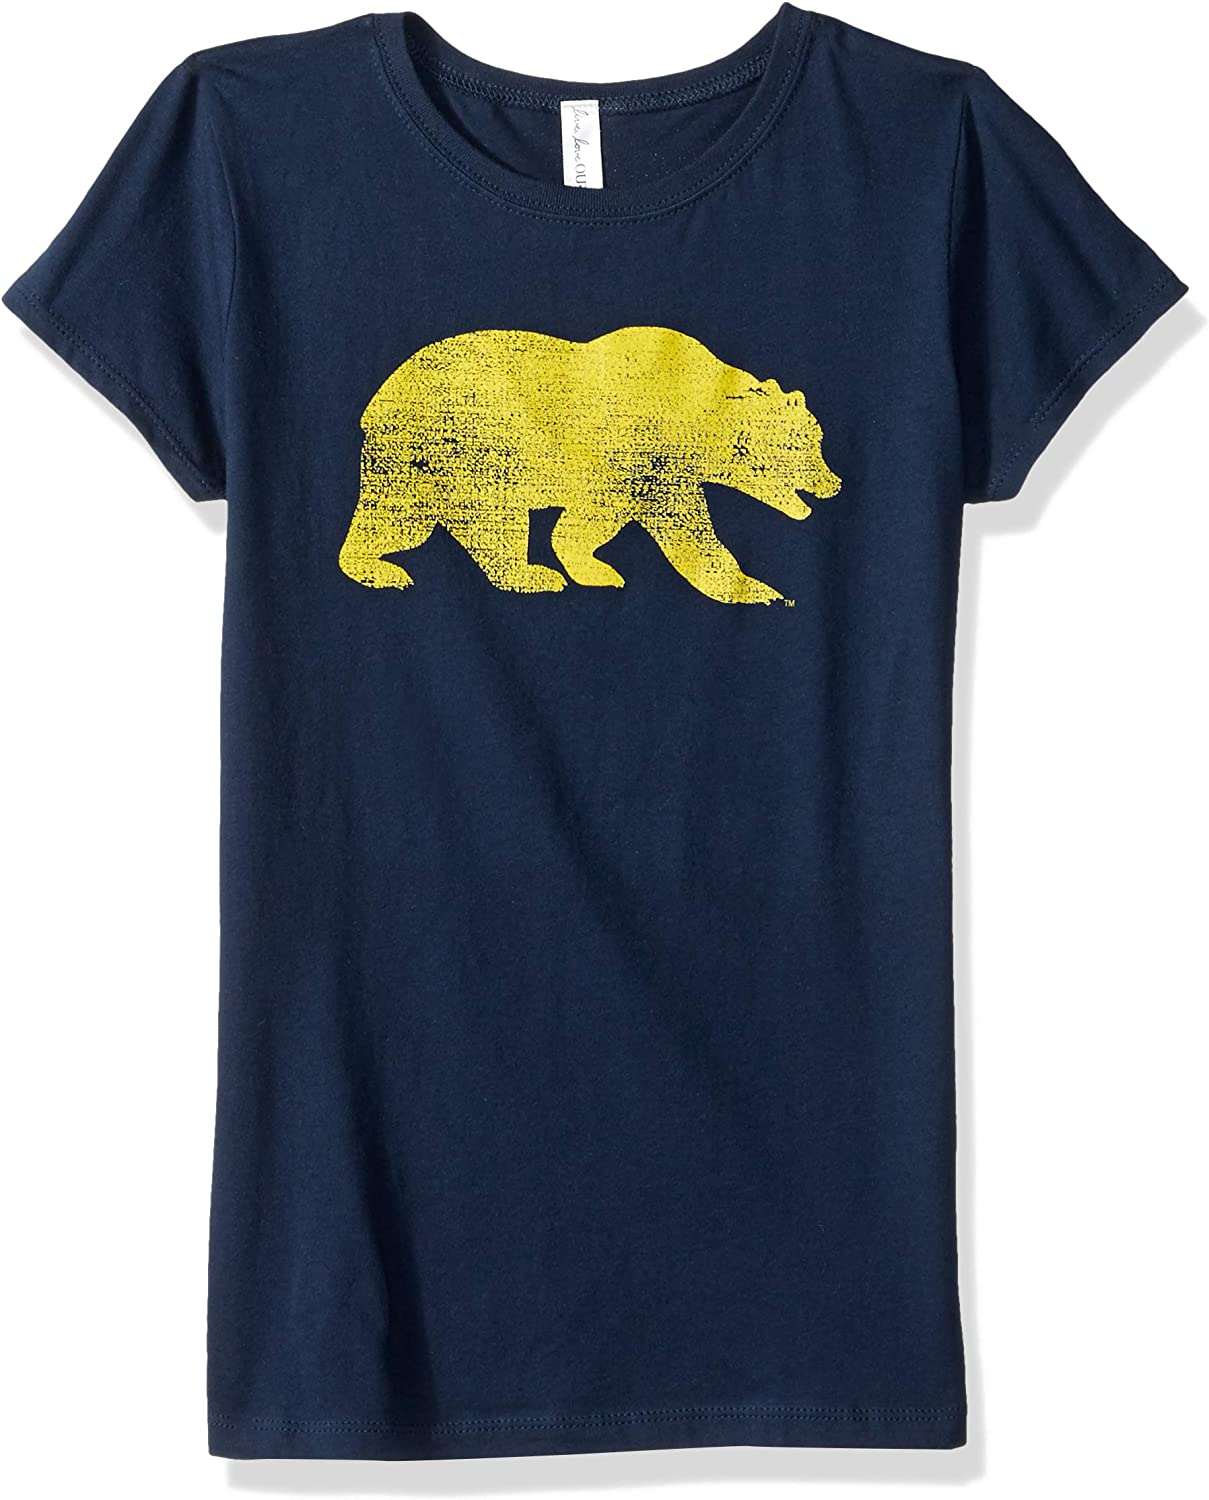 Ouray Sportswear NCAA Girls Youth Princess S//S T